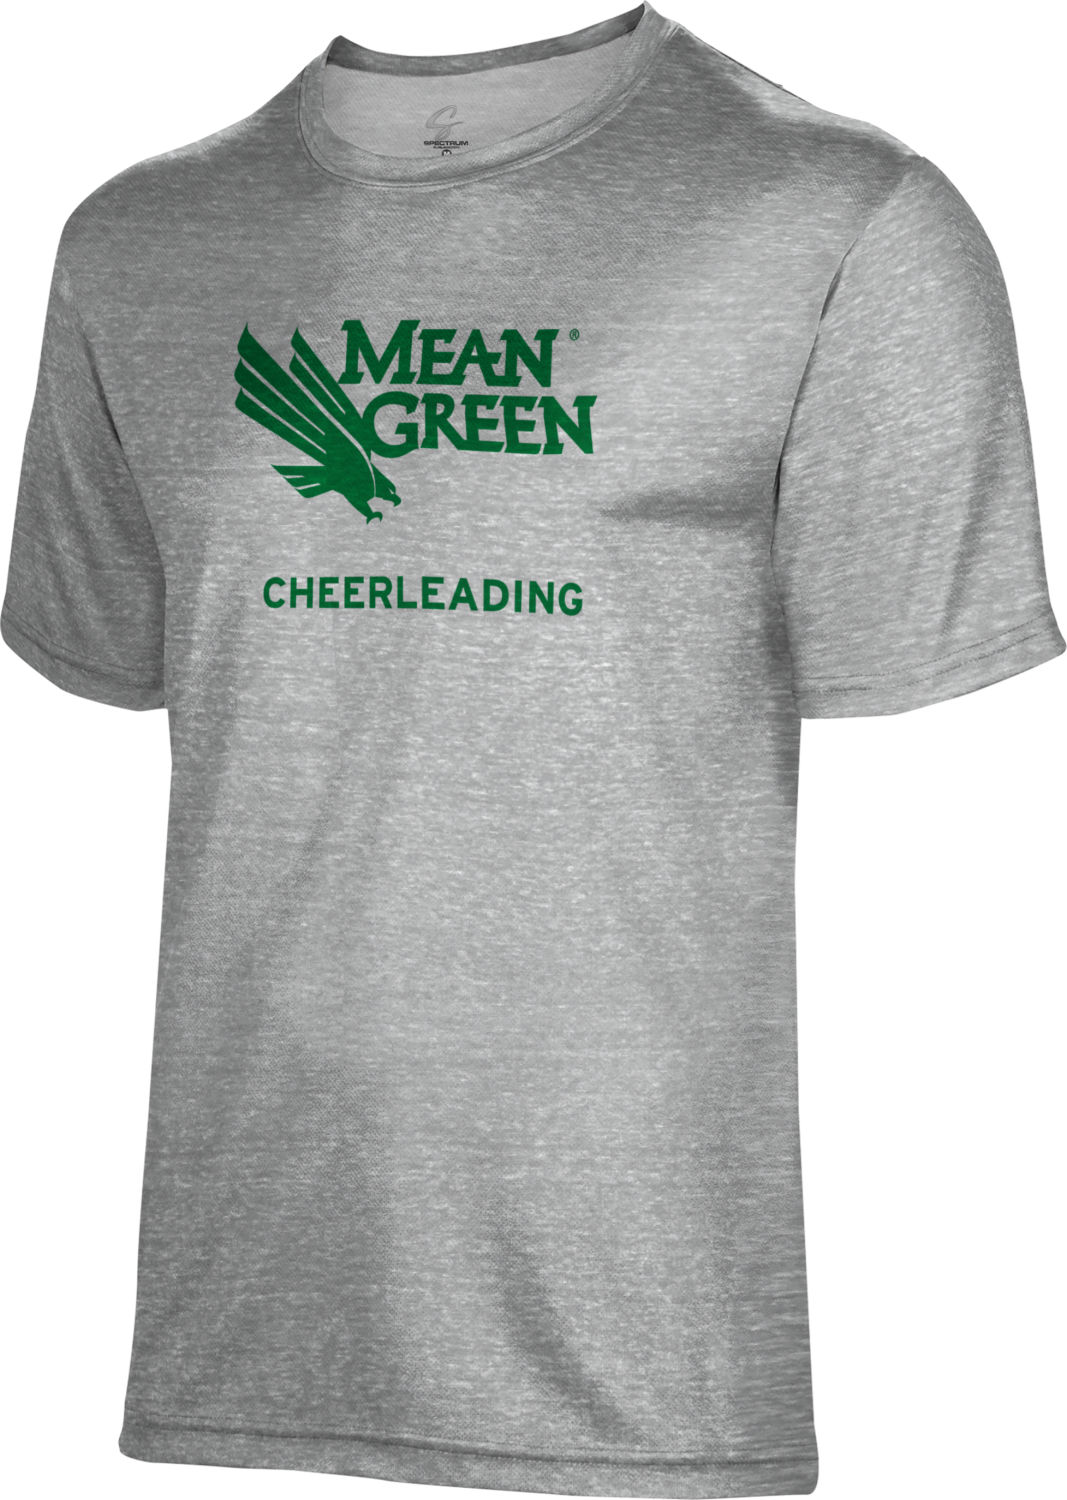 Spectrum Cheerleading Unisex 50/50 Distressed Short Sleeve Tee